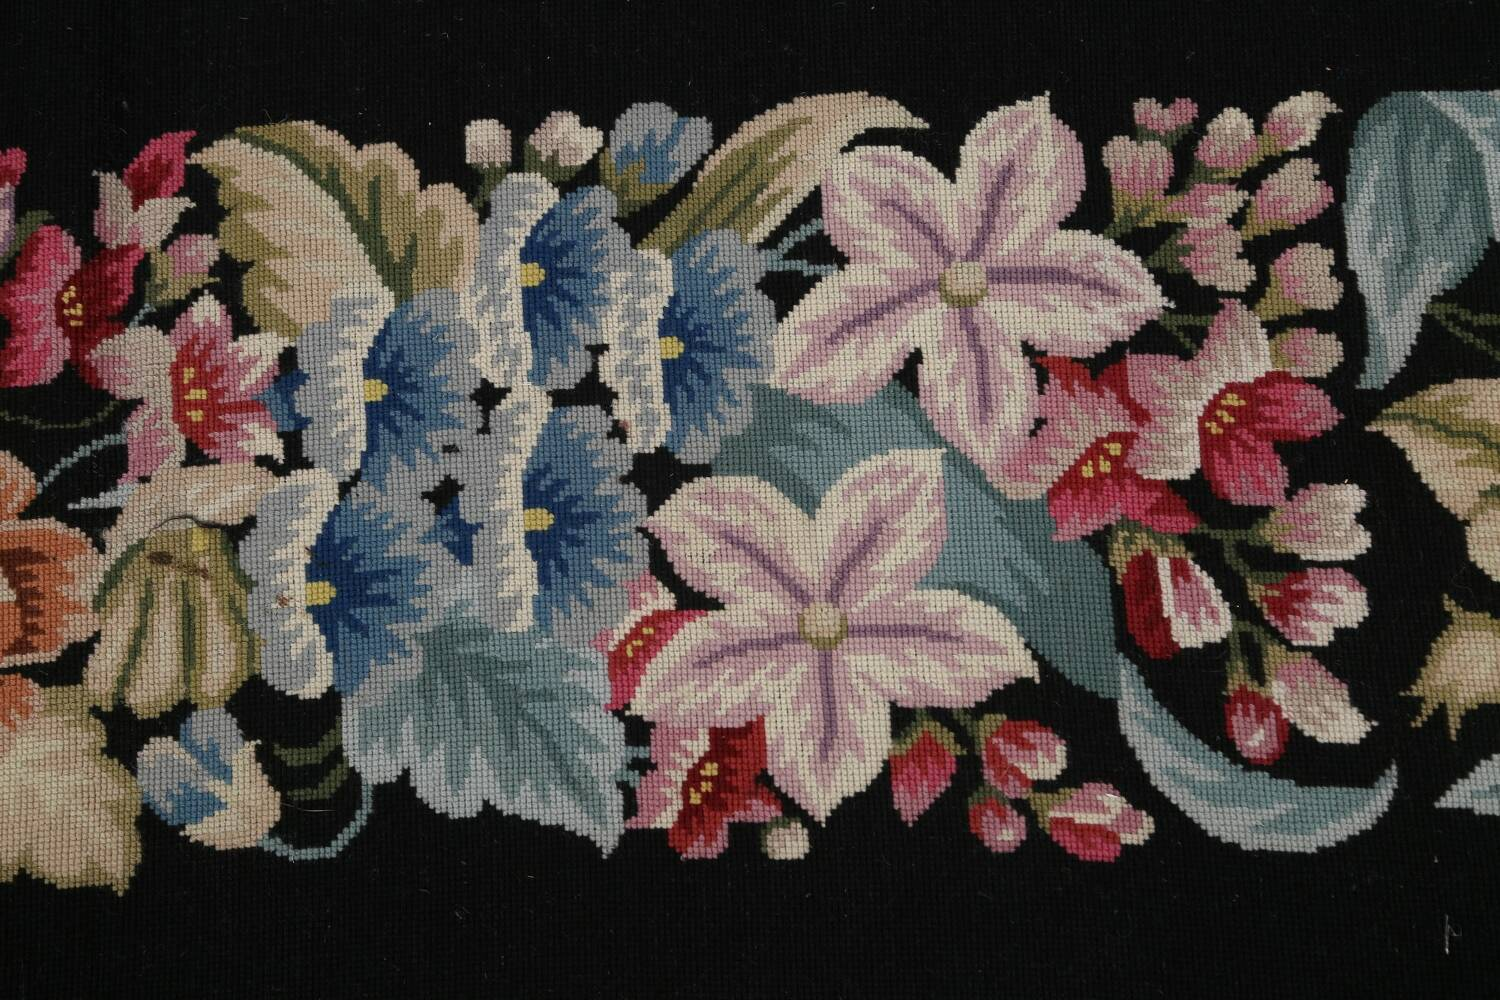 All-Over Floral Needlepoint Oriental Area Rug 10x14 image 9